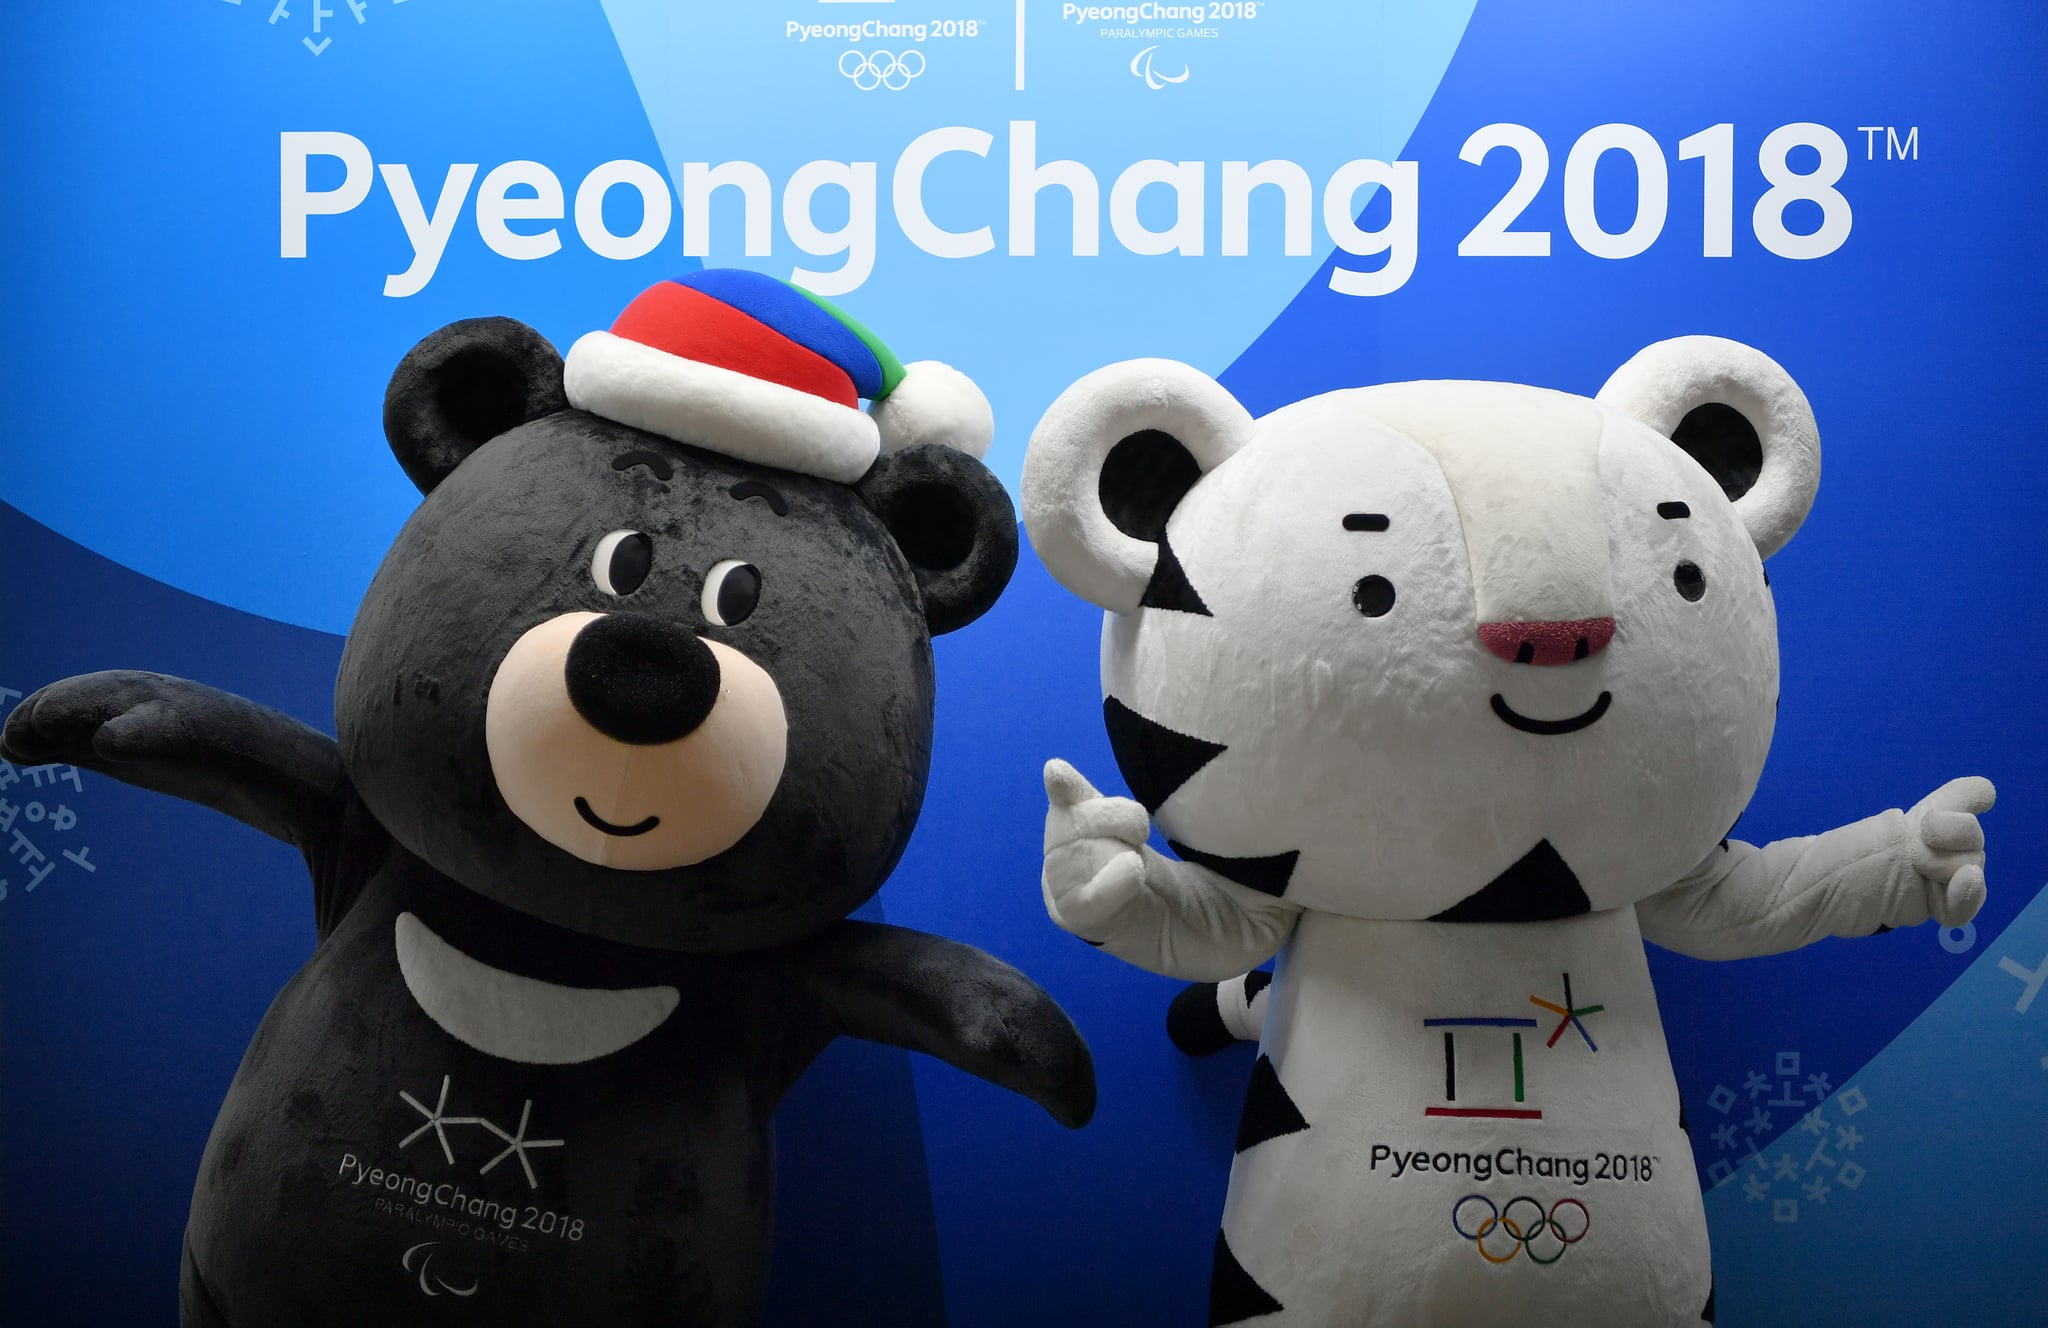 Galaxy Note 8 PyeongChang 2018 edition connects the Winter Olympics